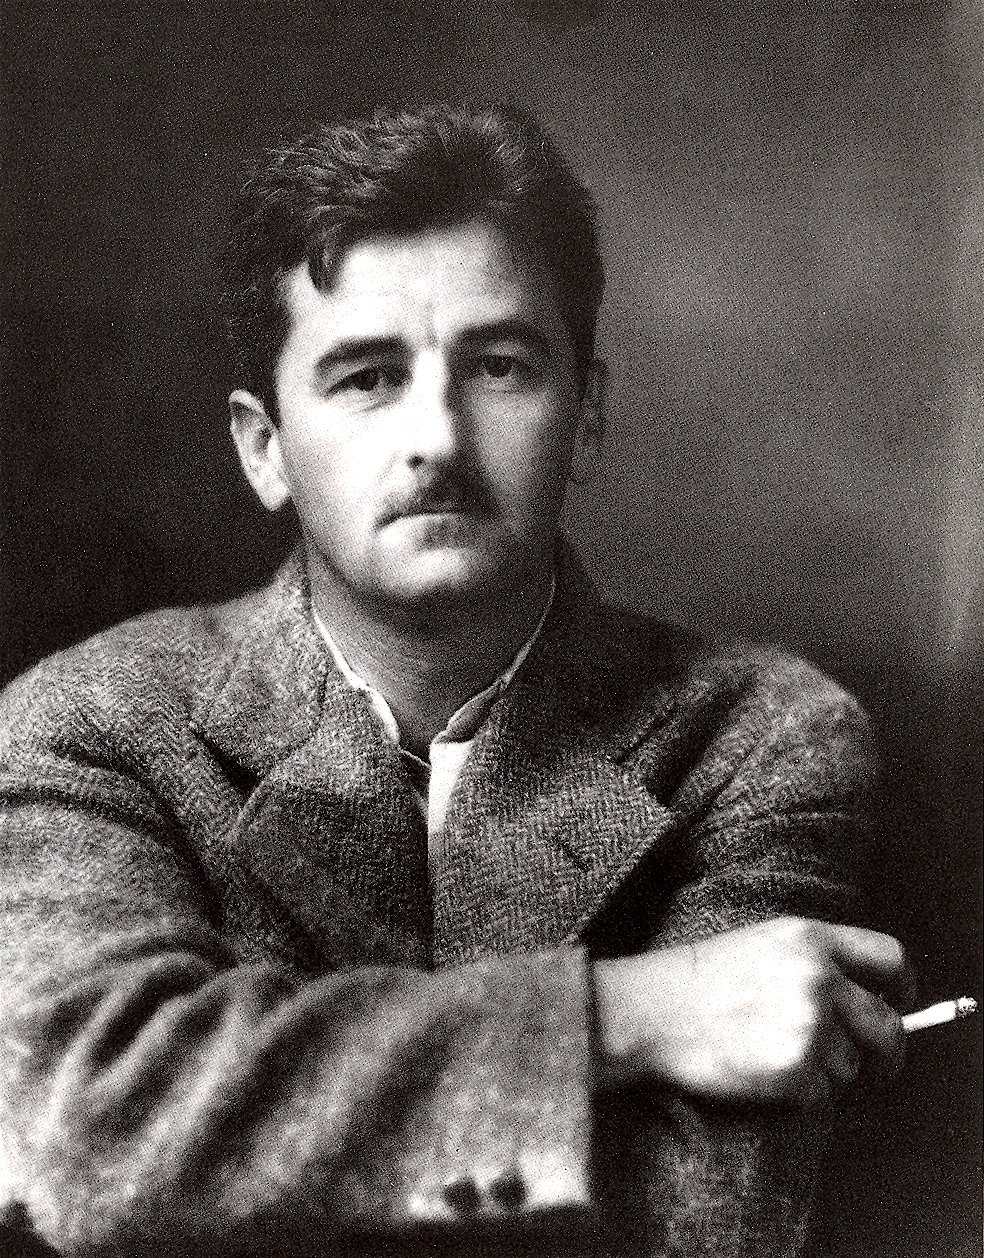 William Faulkner bibliography